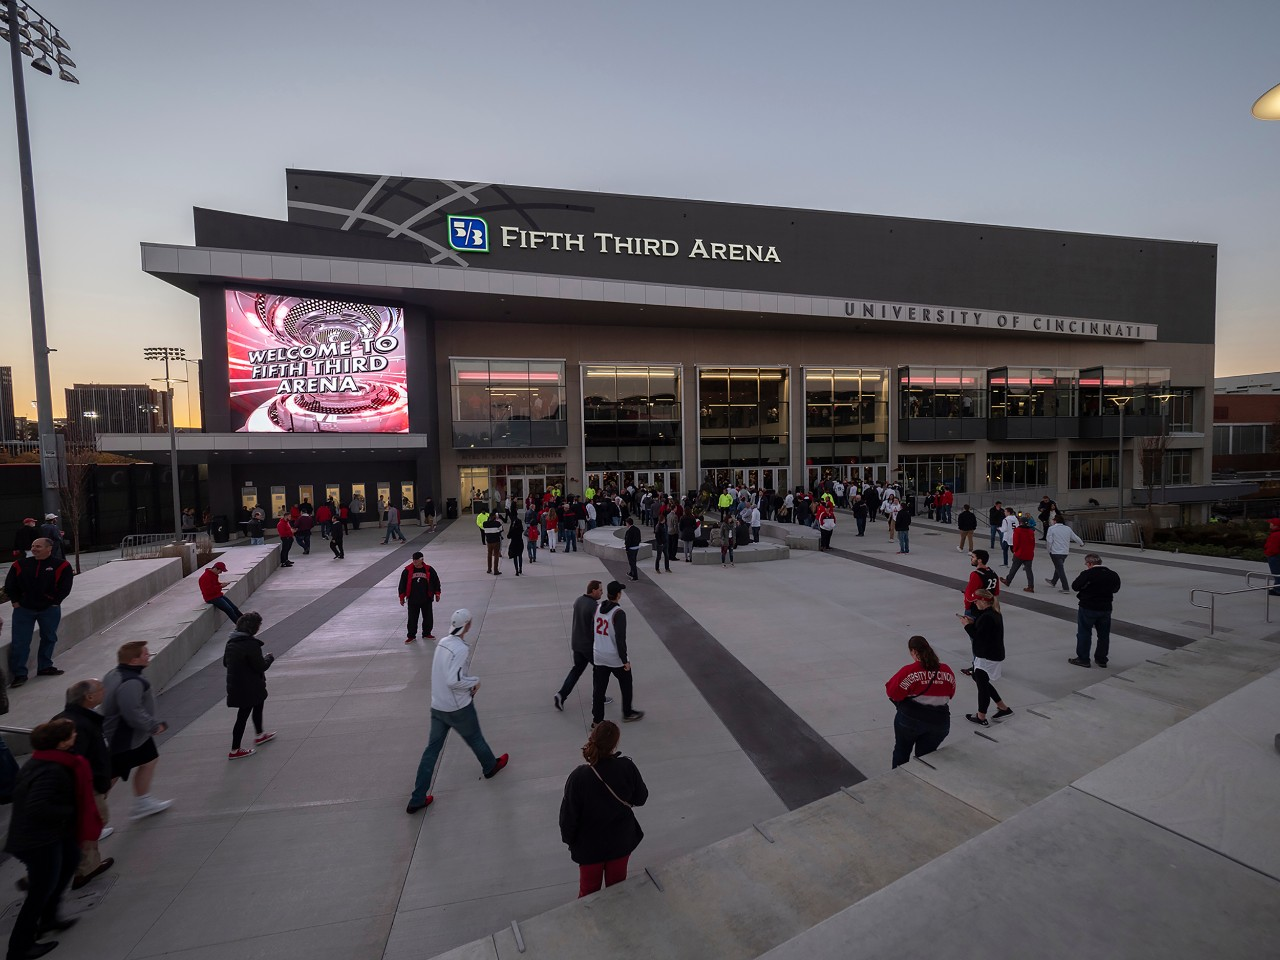 Visitors file past Fifth Third Arena's East Concourse entrance in the twilight on a game night.